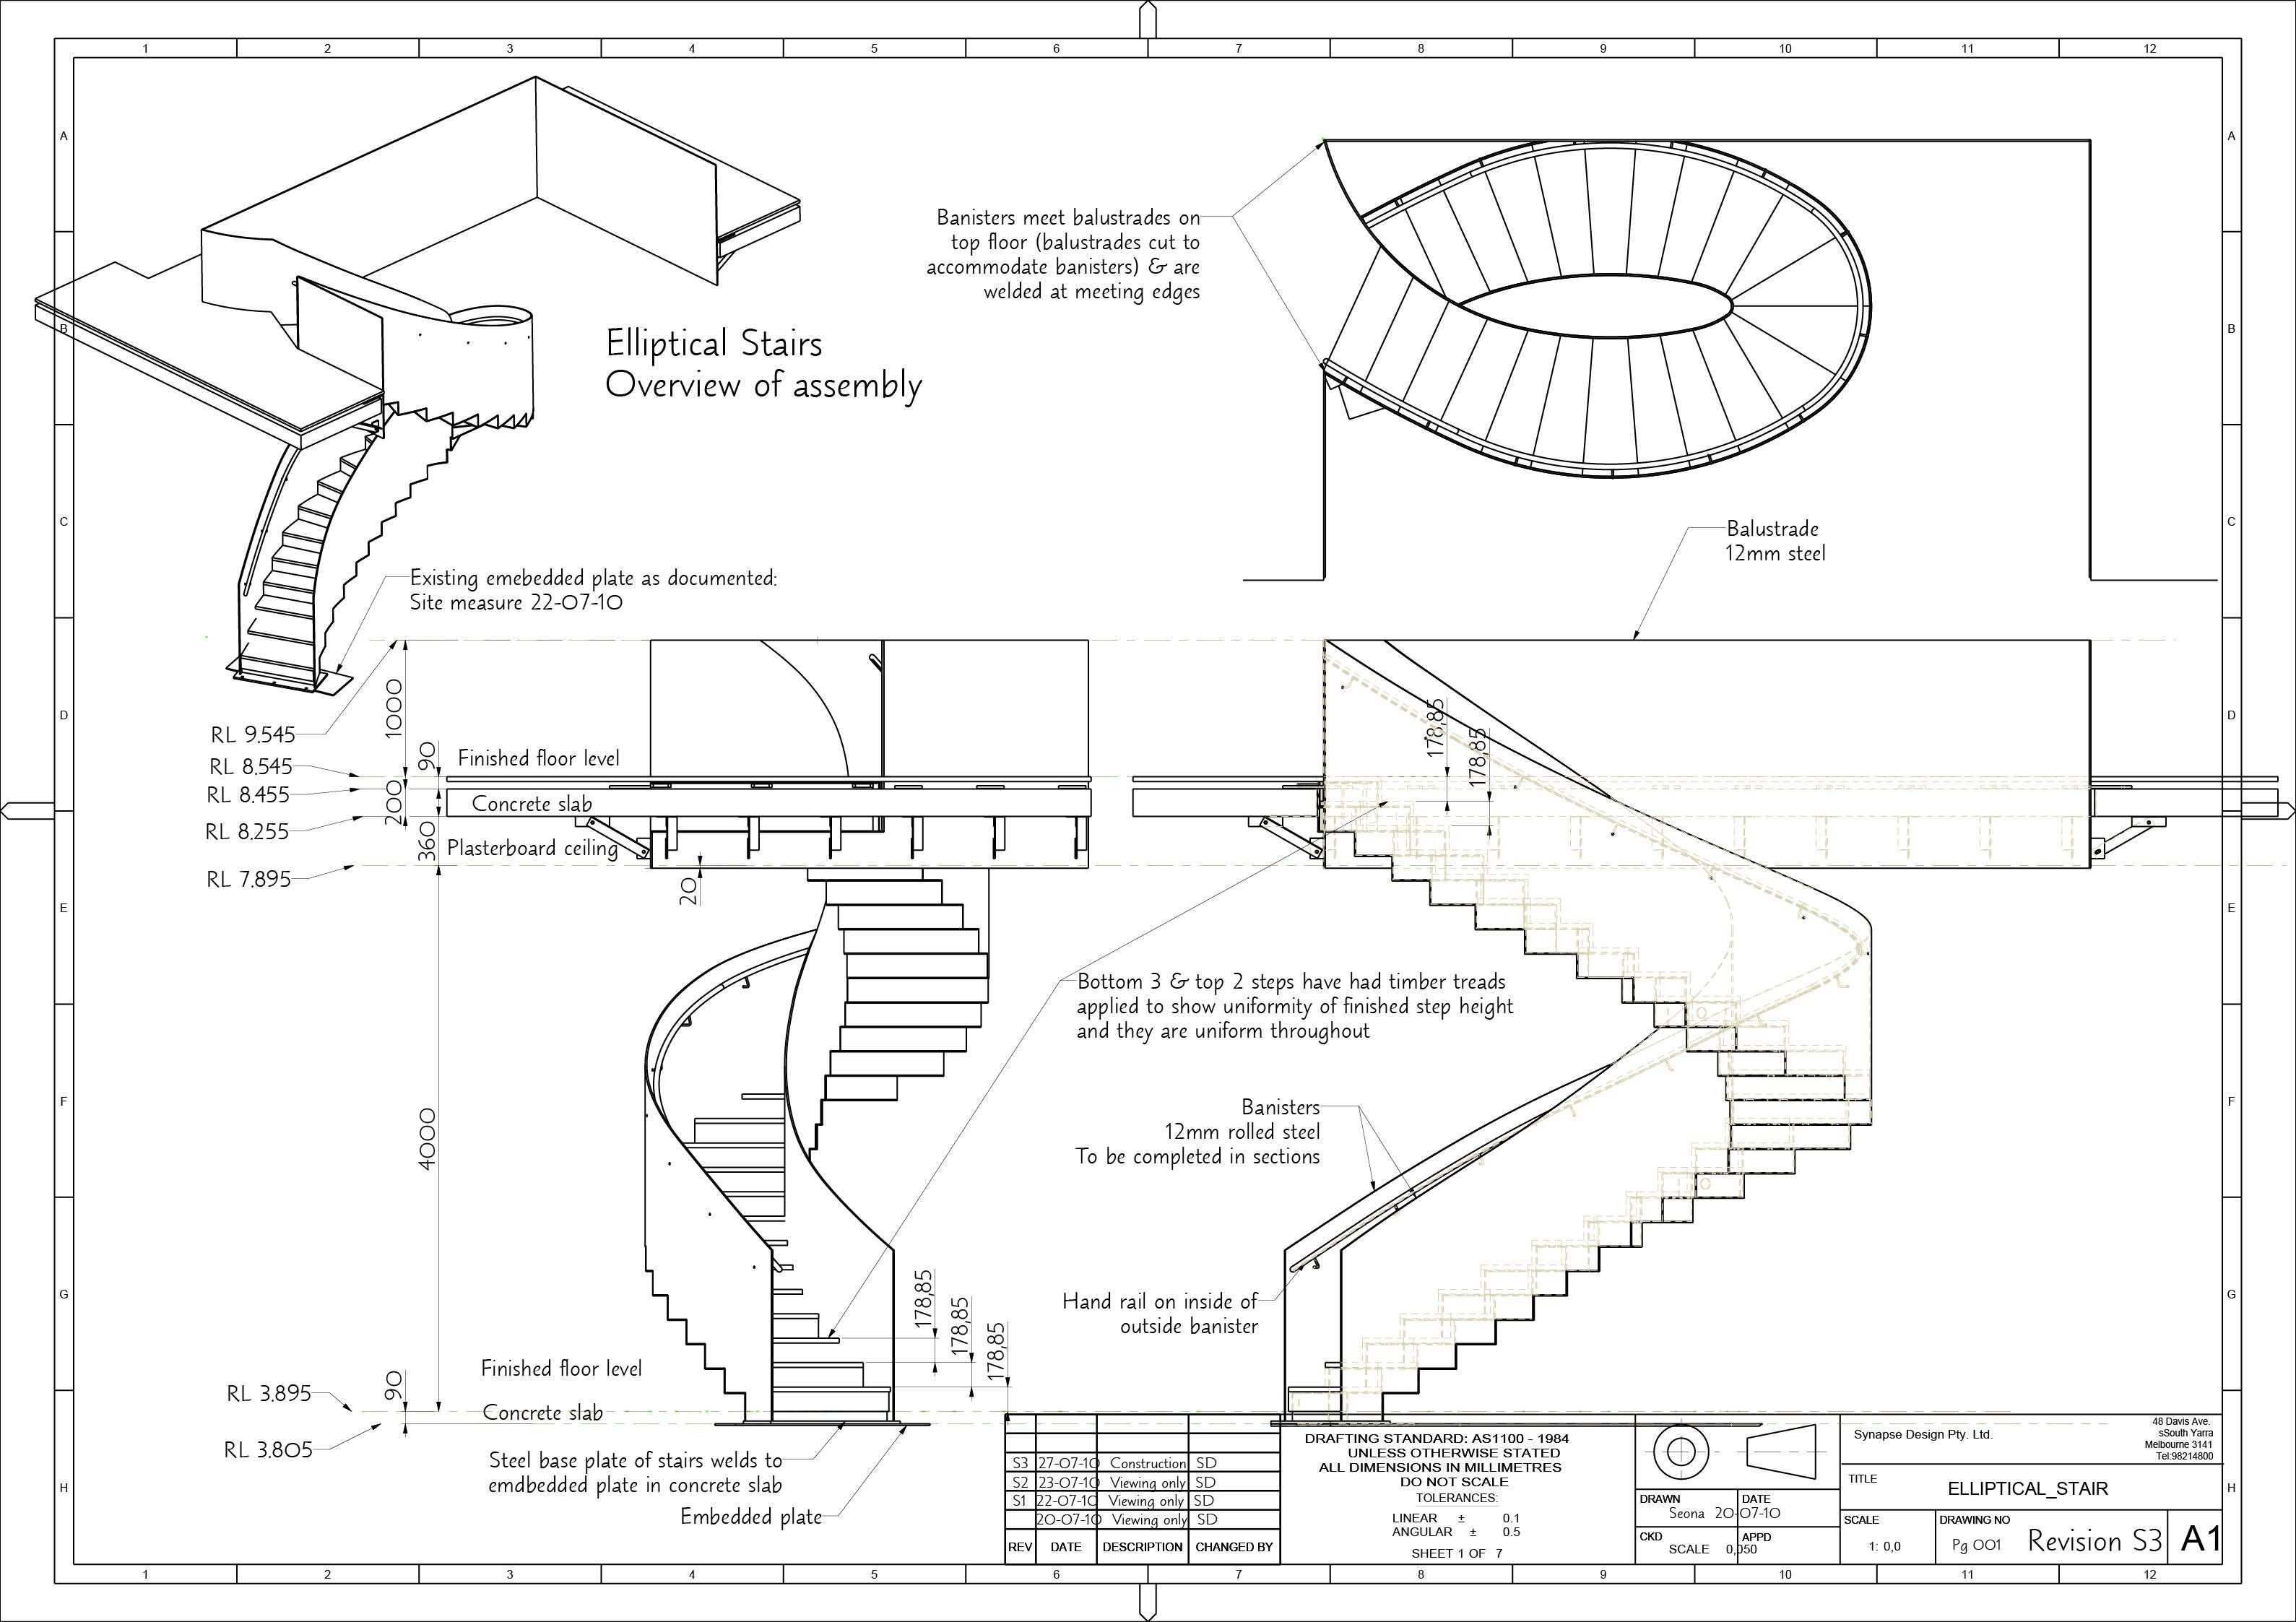 Elliptical Stairs Page 1 Jpg 3179 2246 Stair Dimensions Spiral Staircase Plan Floor Plans